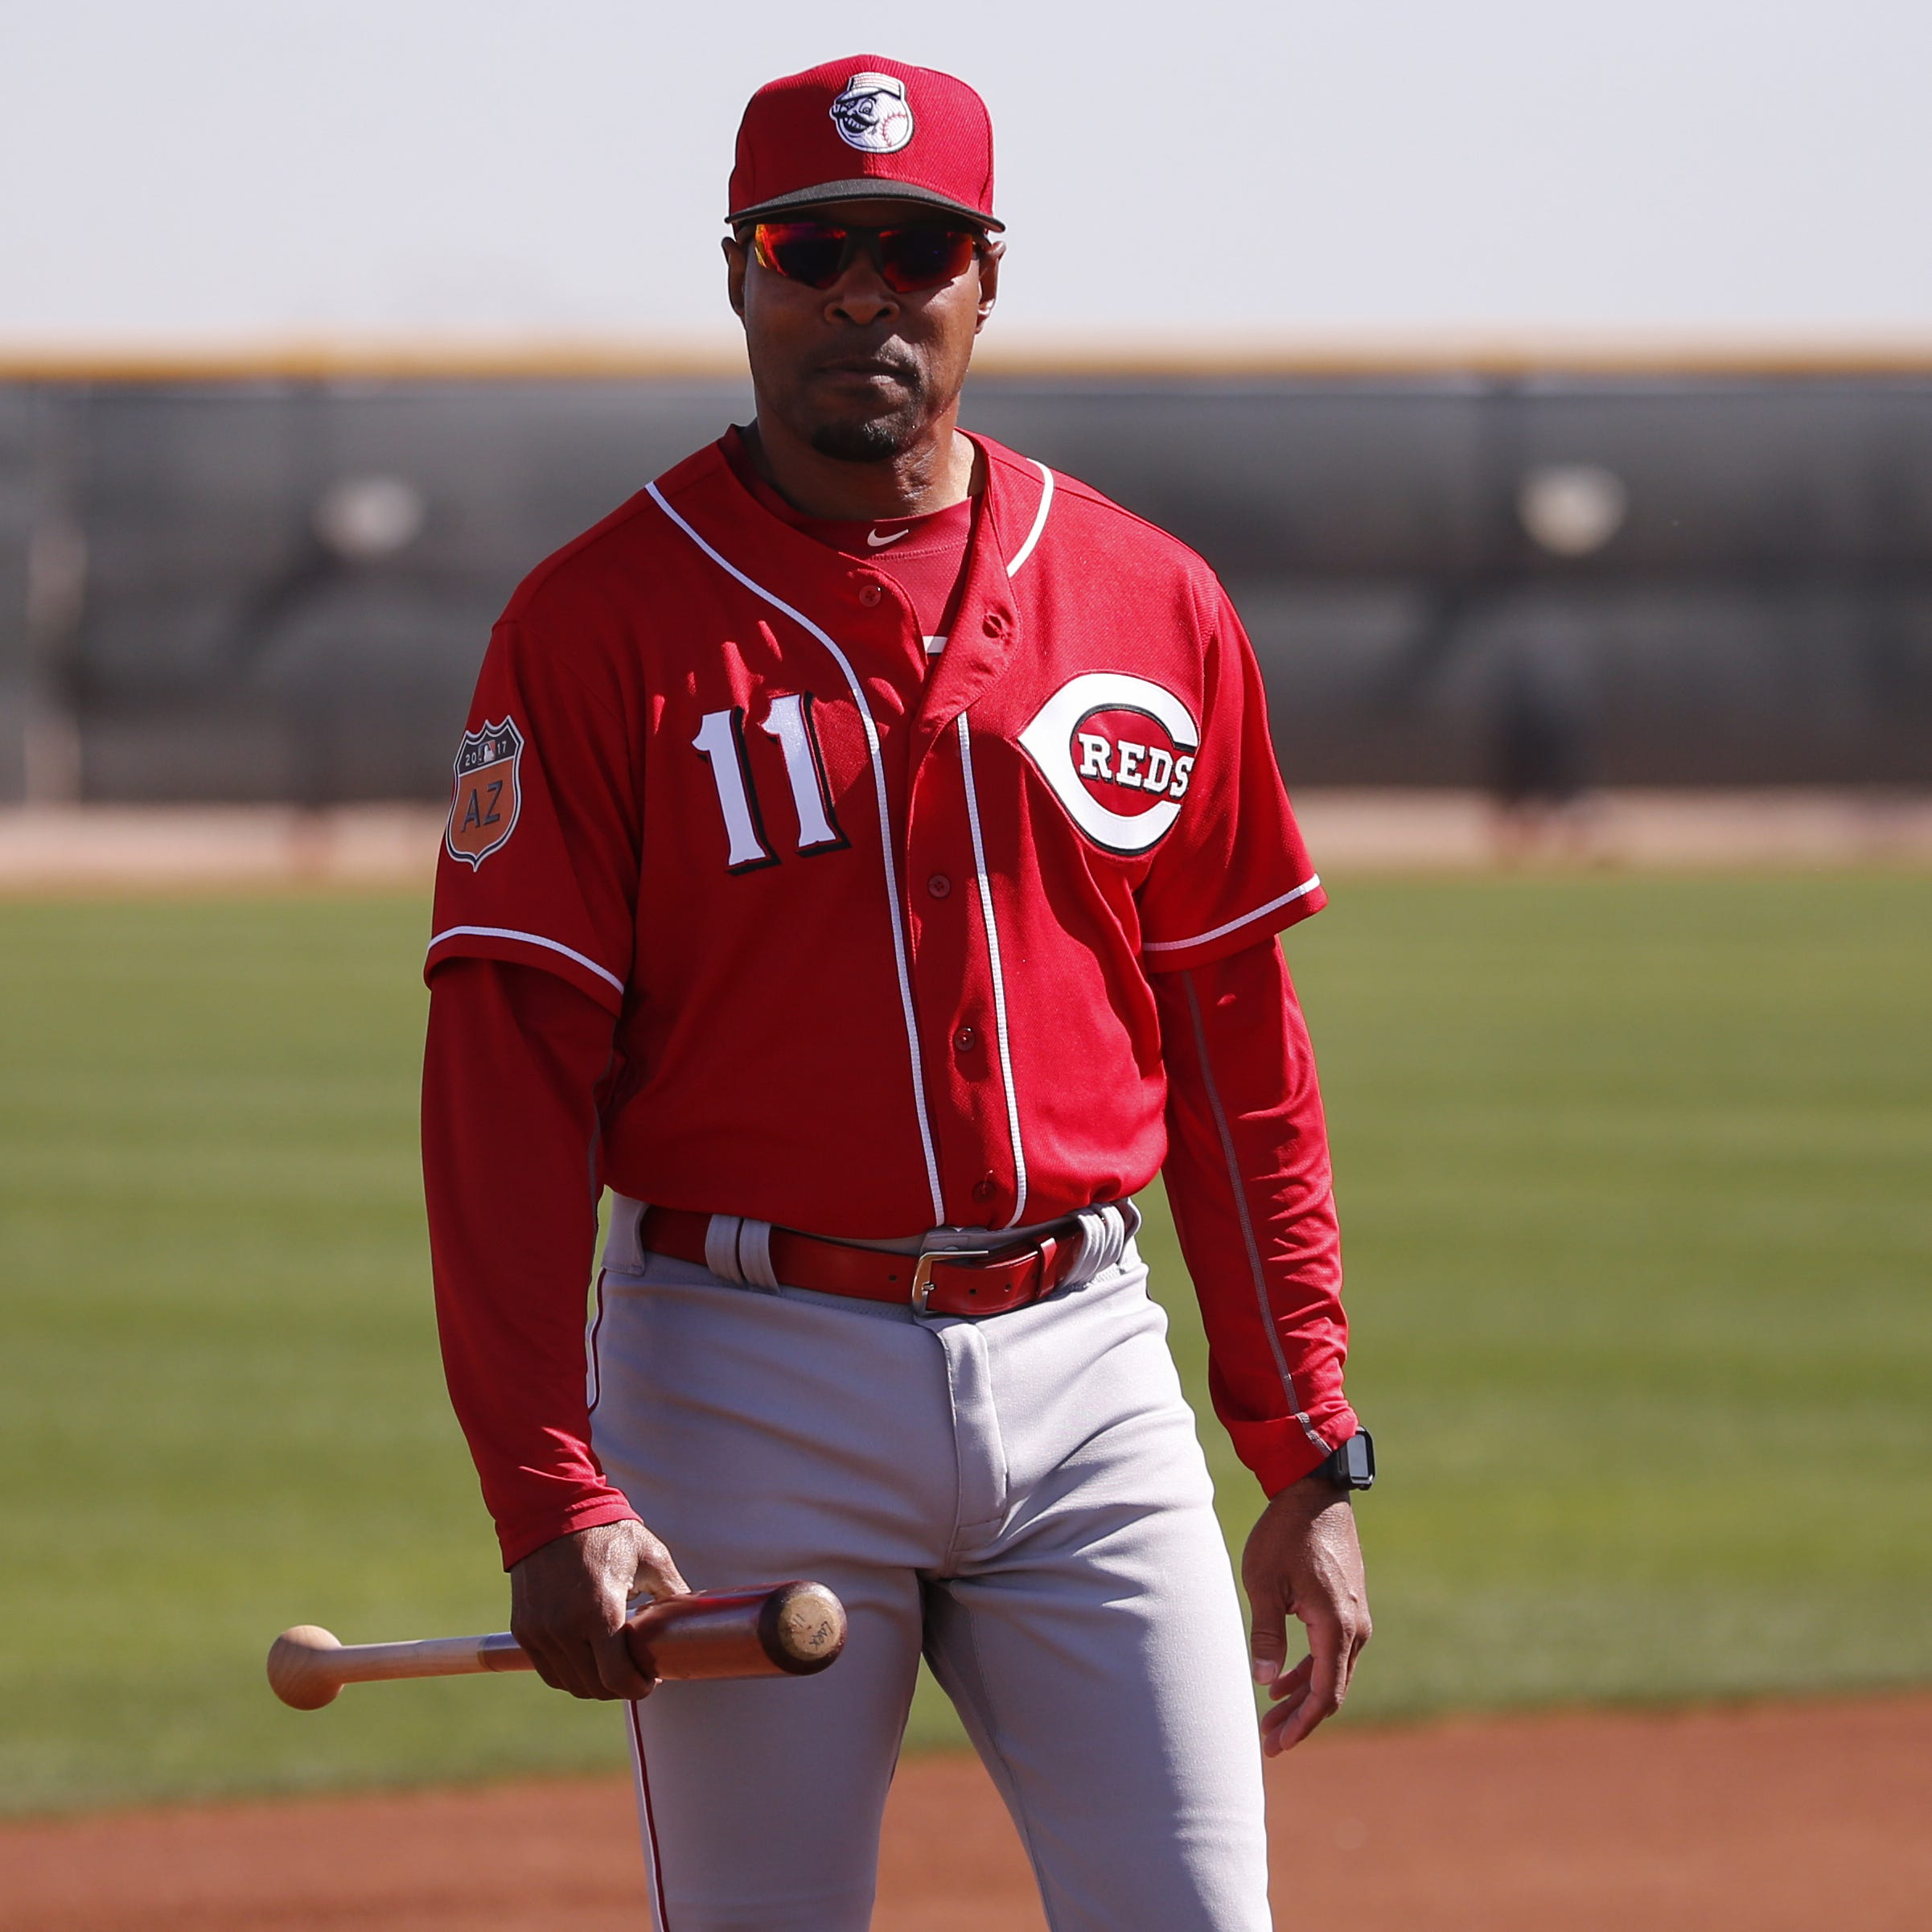 Dick Williams: Barry Larkin pulled himself out of consideration as Cincinnati Reds manager; John Farrell will be interviewed